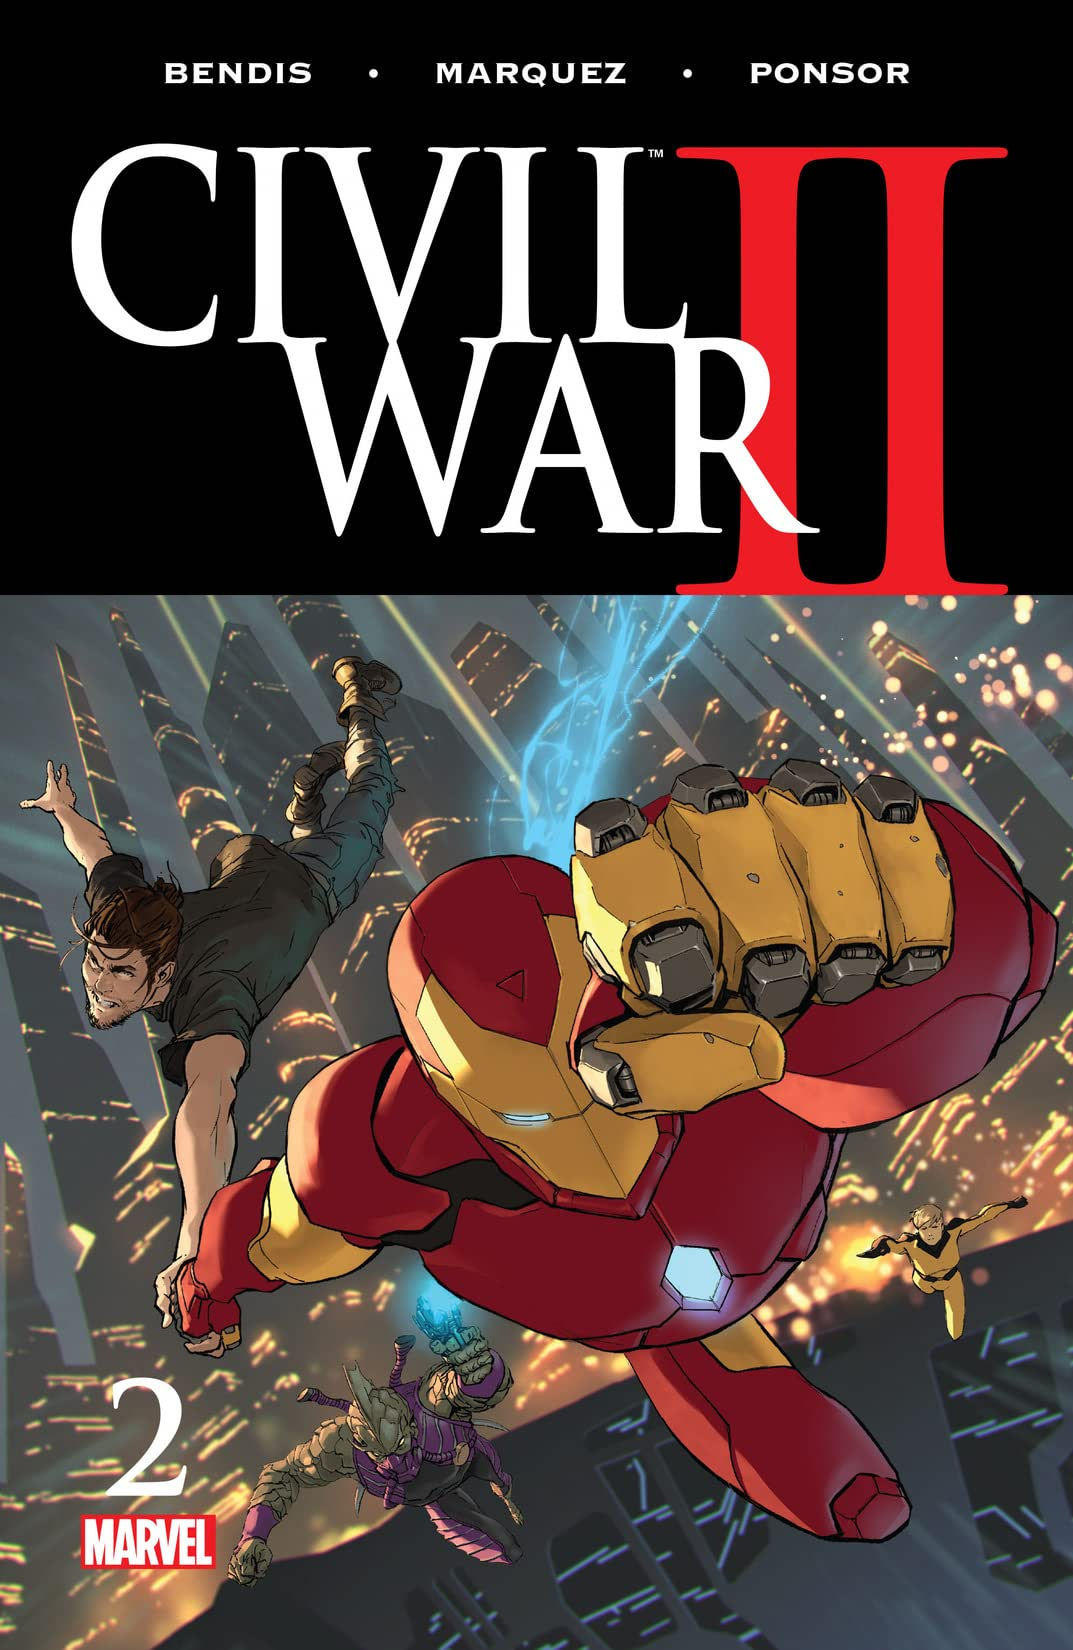 Civil War II (2016) #2 (of 8)